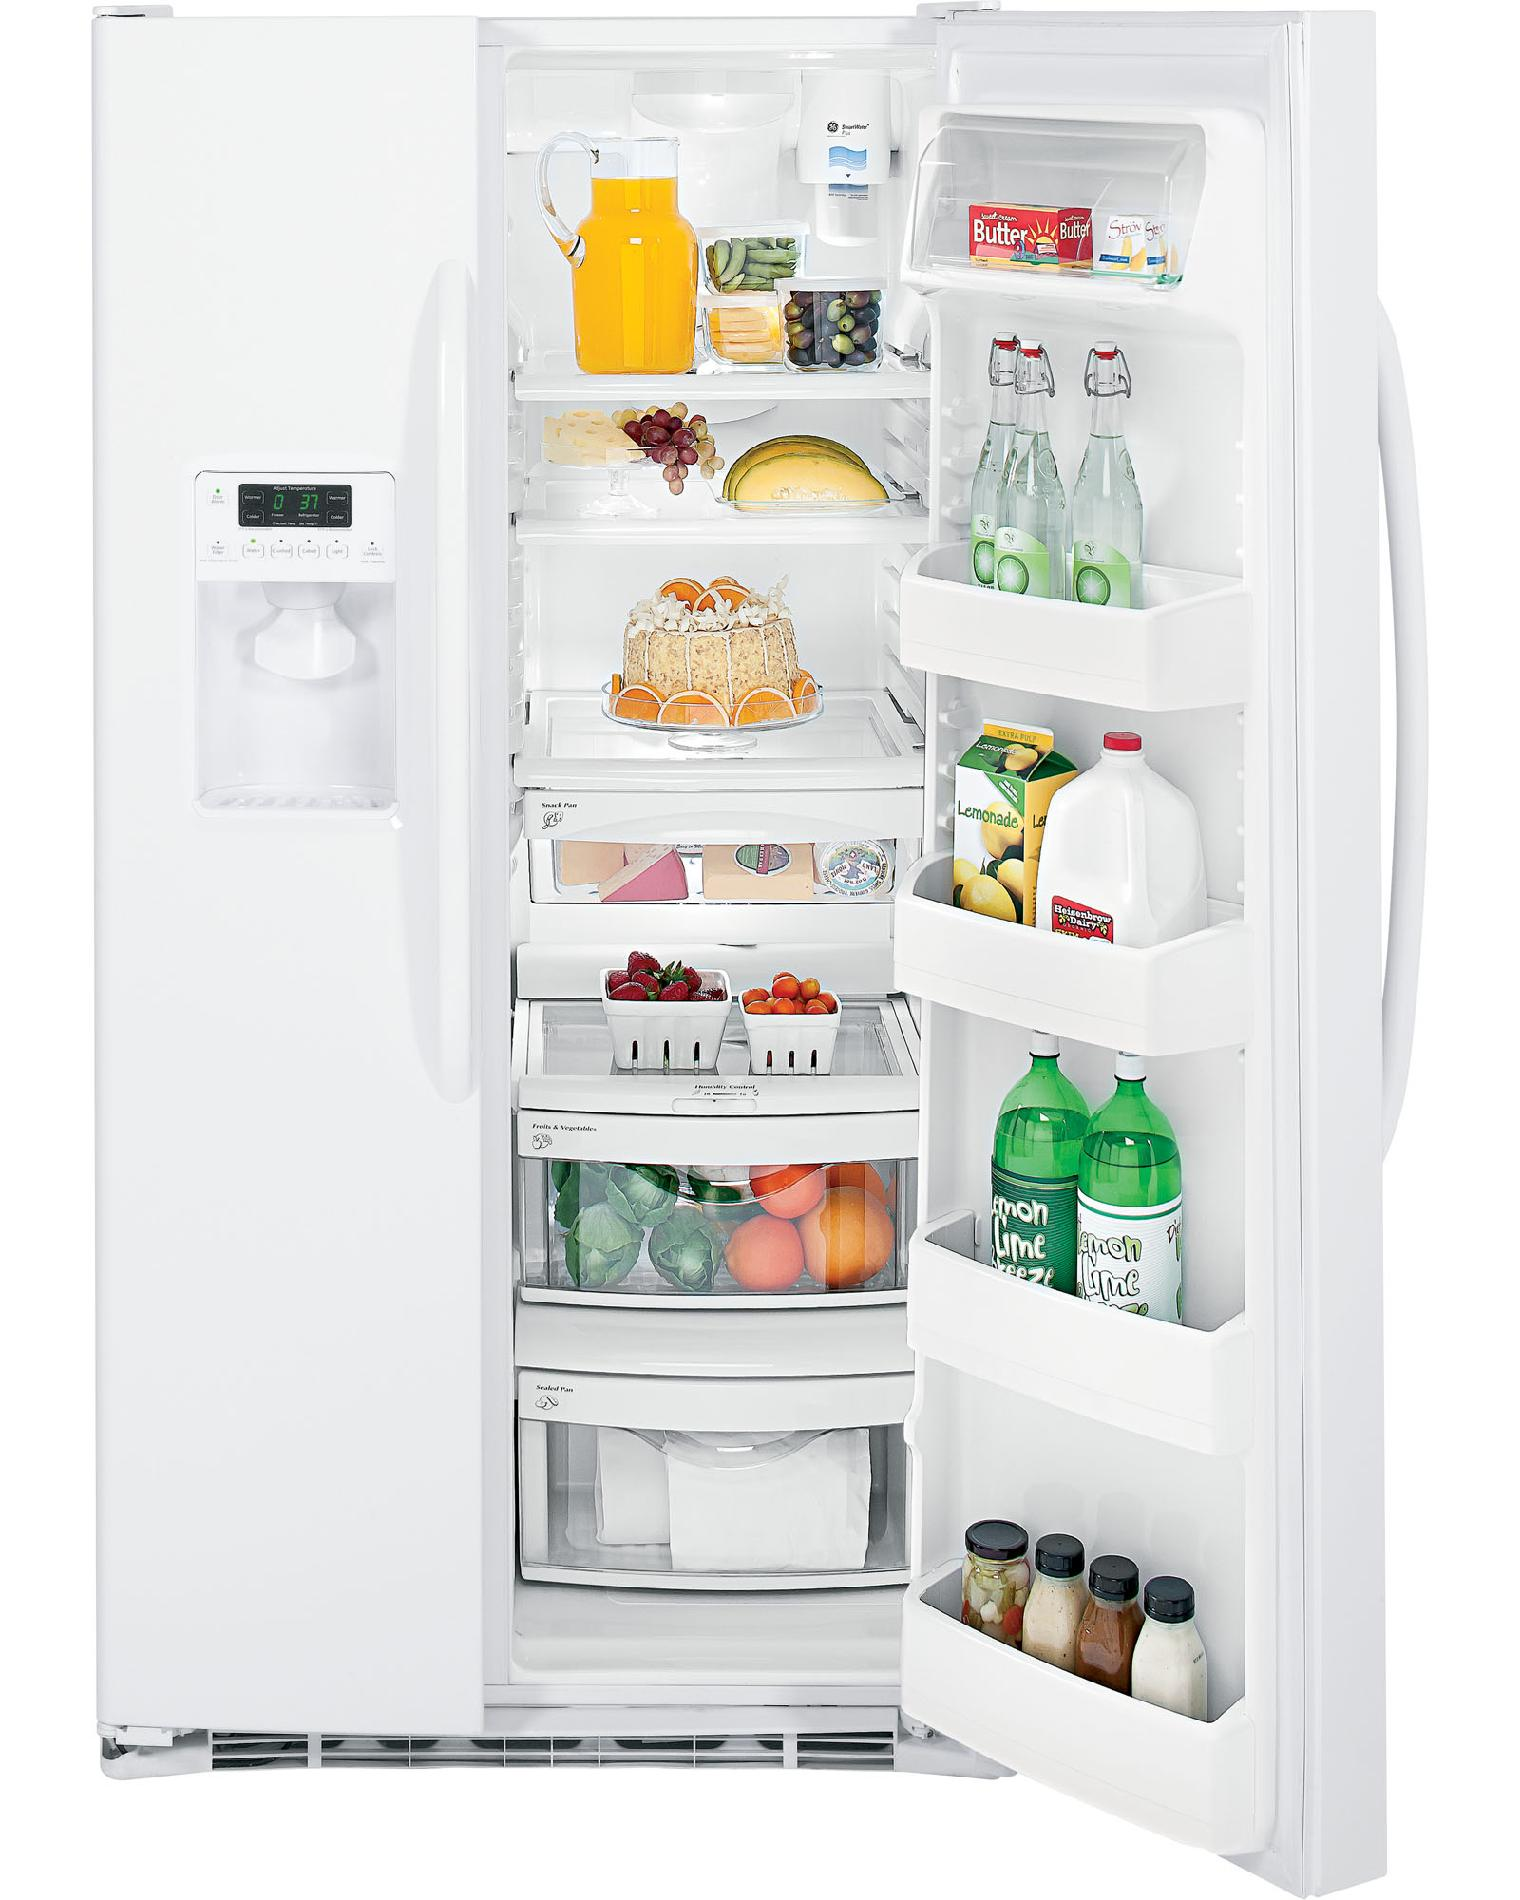 GE 25.9 cu. ft. Side-by-Side Refrigerator w/ Dispenser - White